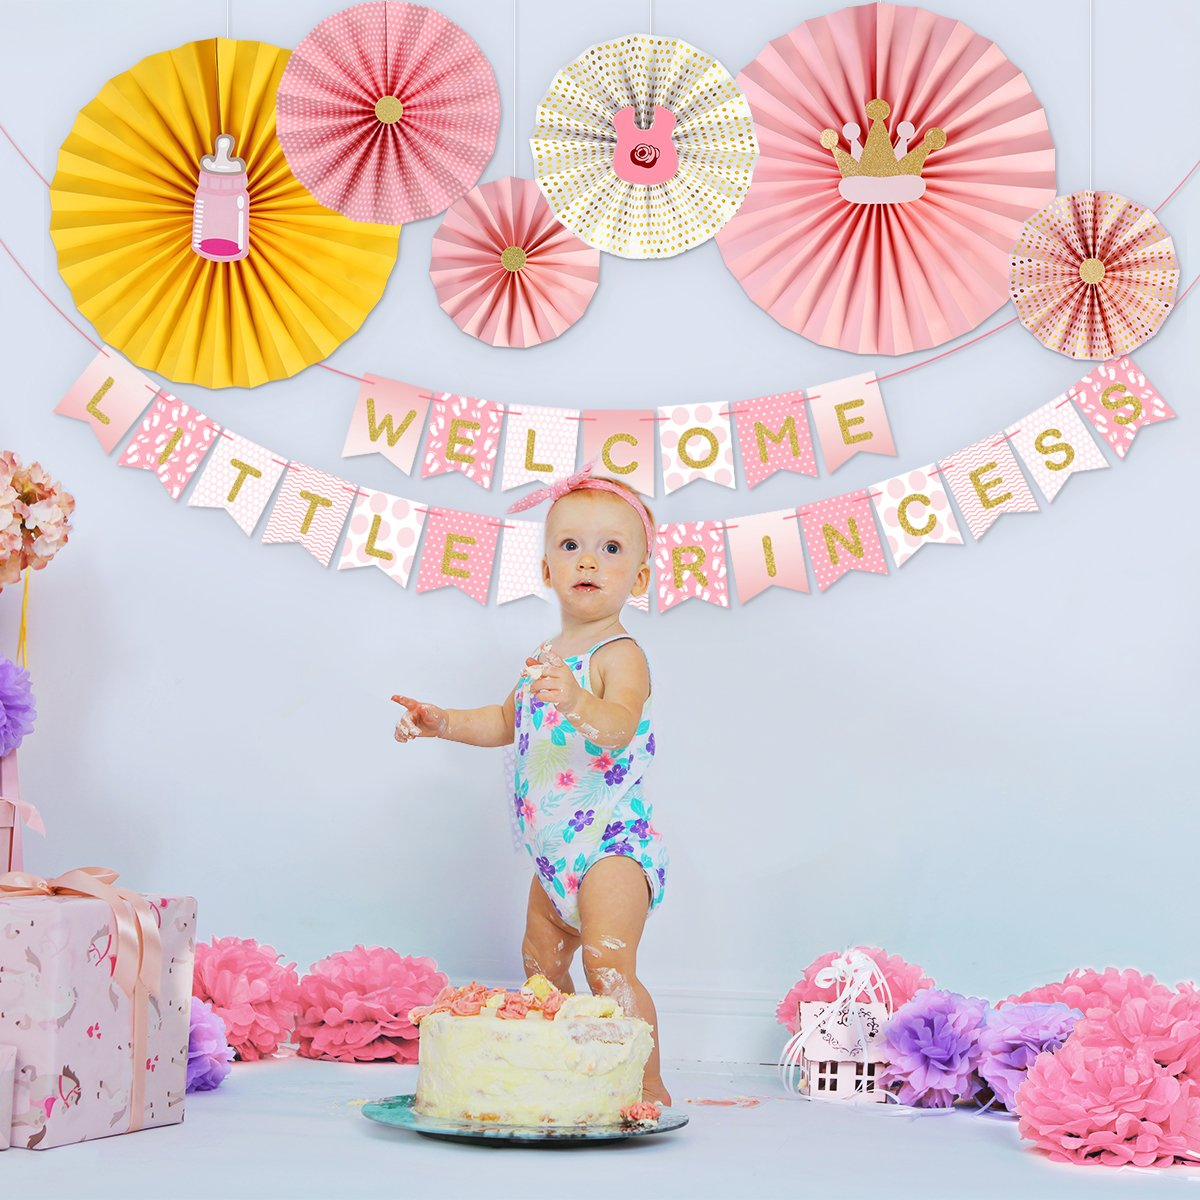 Event & Party New Diy Album Monthly Paper 1st One Year Photo Booth Birthday Banner Baby Photos Show Baby Photo Album Party Decoration Supplies Bringing More Convenience To The People In Their Daily Life